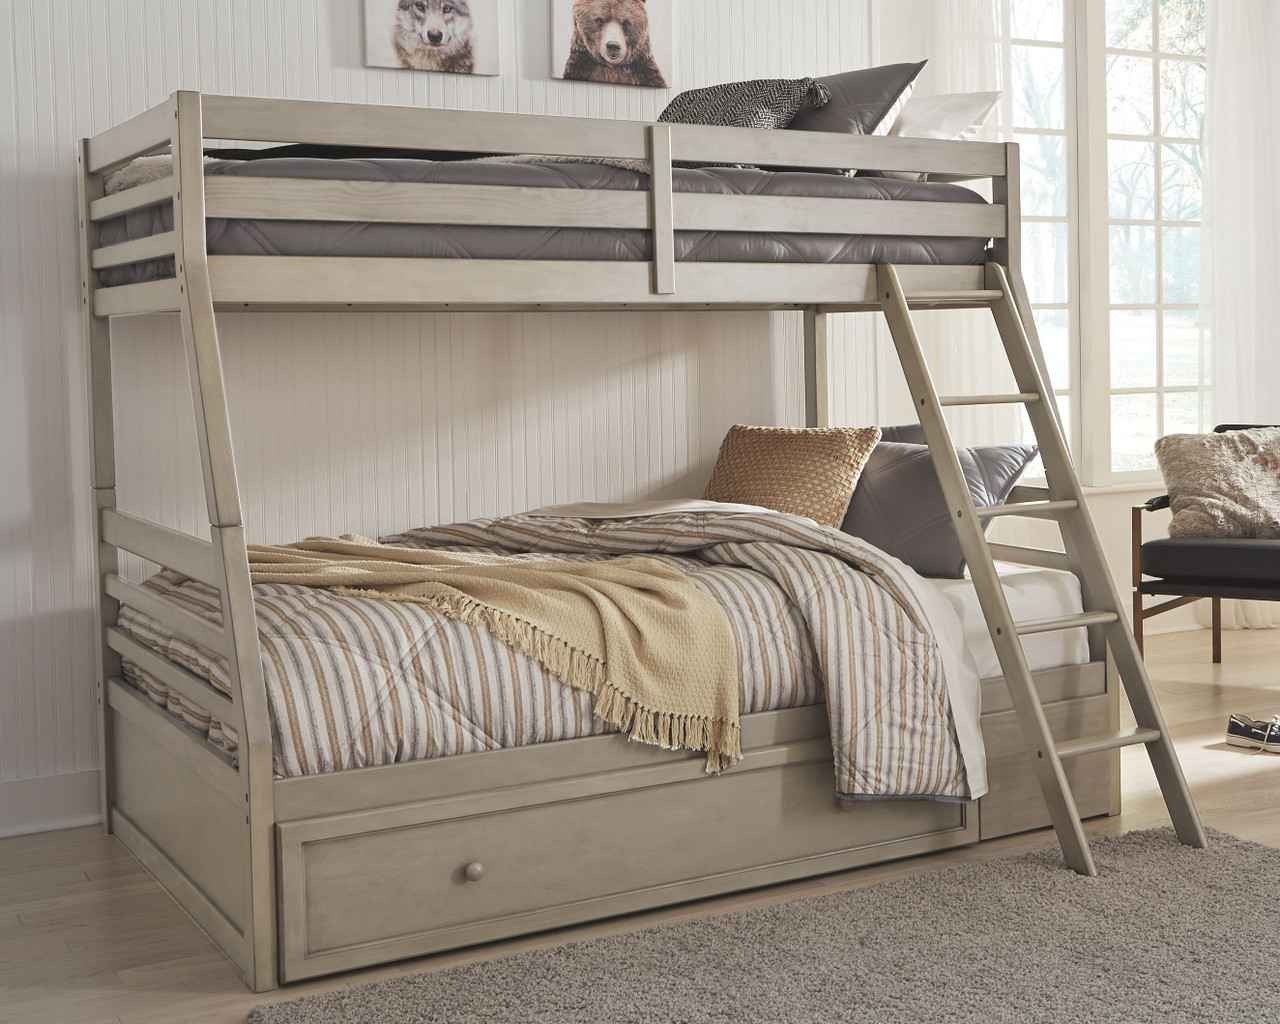 The Lettner Light Gray Twin Over Full Bunk Bed With 1 Large Storage Drawer Available At Riley S Rooms Serving Tecumseh And Windsor On